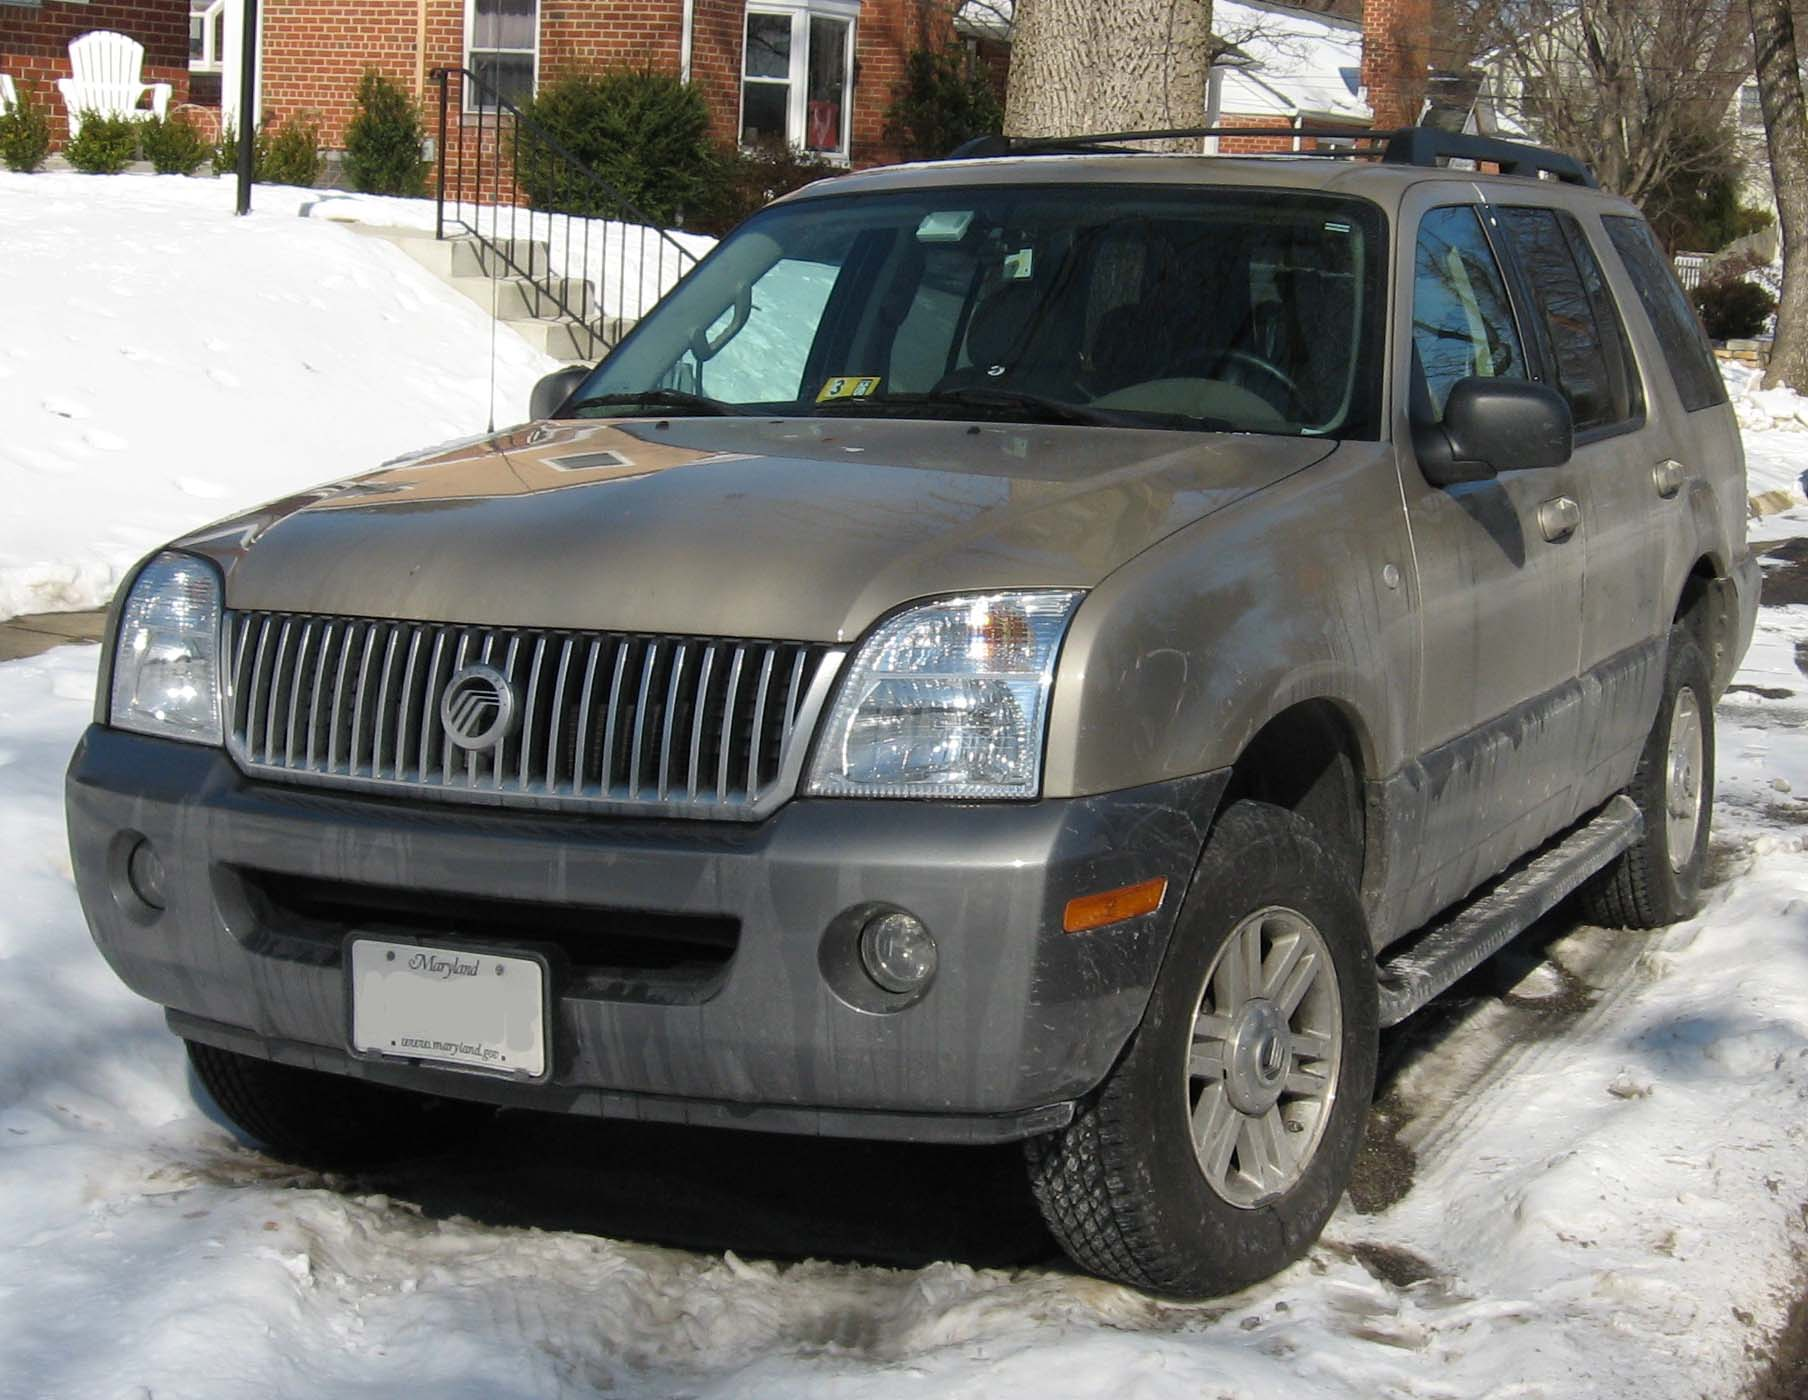 2002 Mercury Mountaineer   pictures, information and specs - Auto